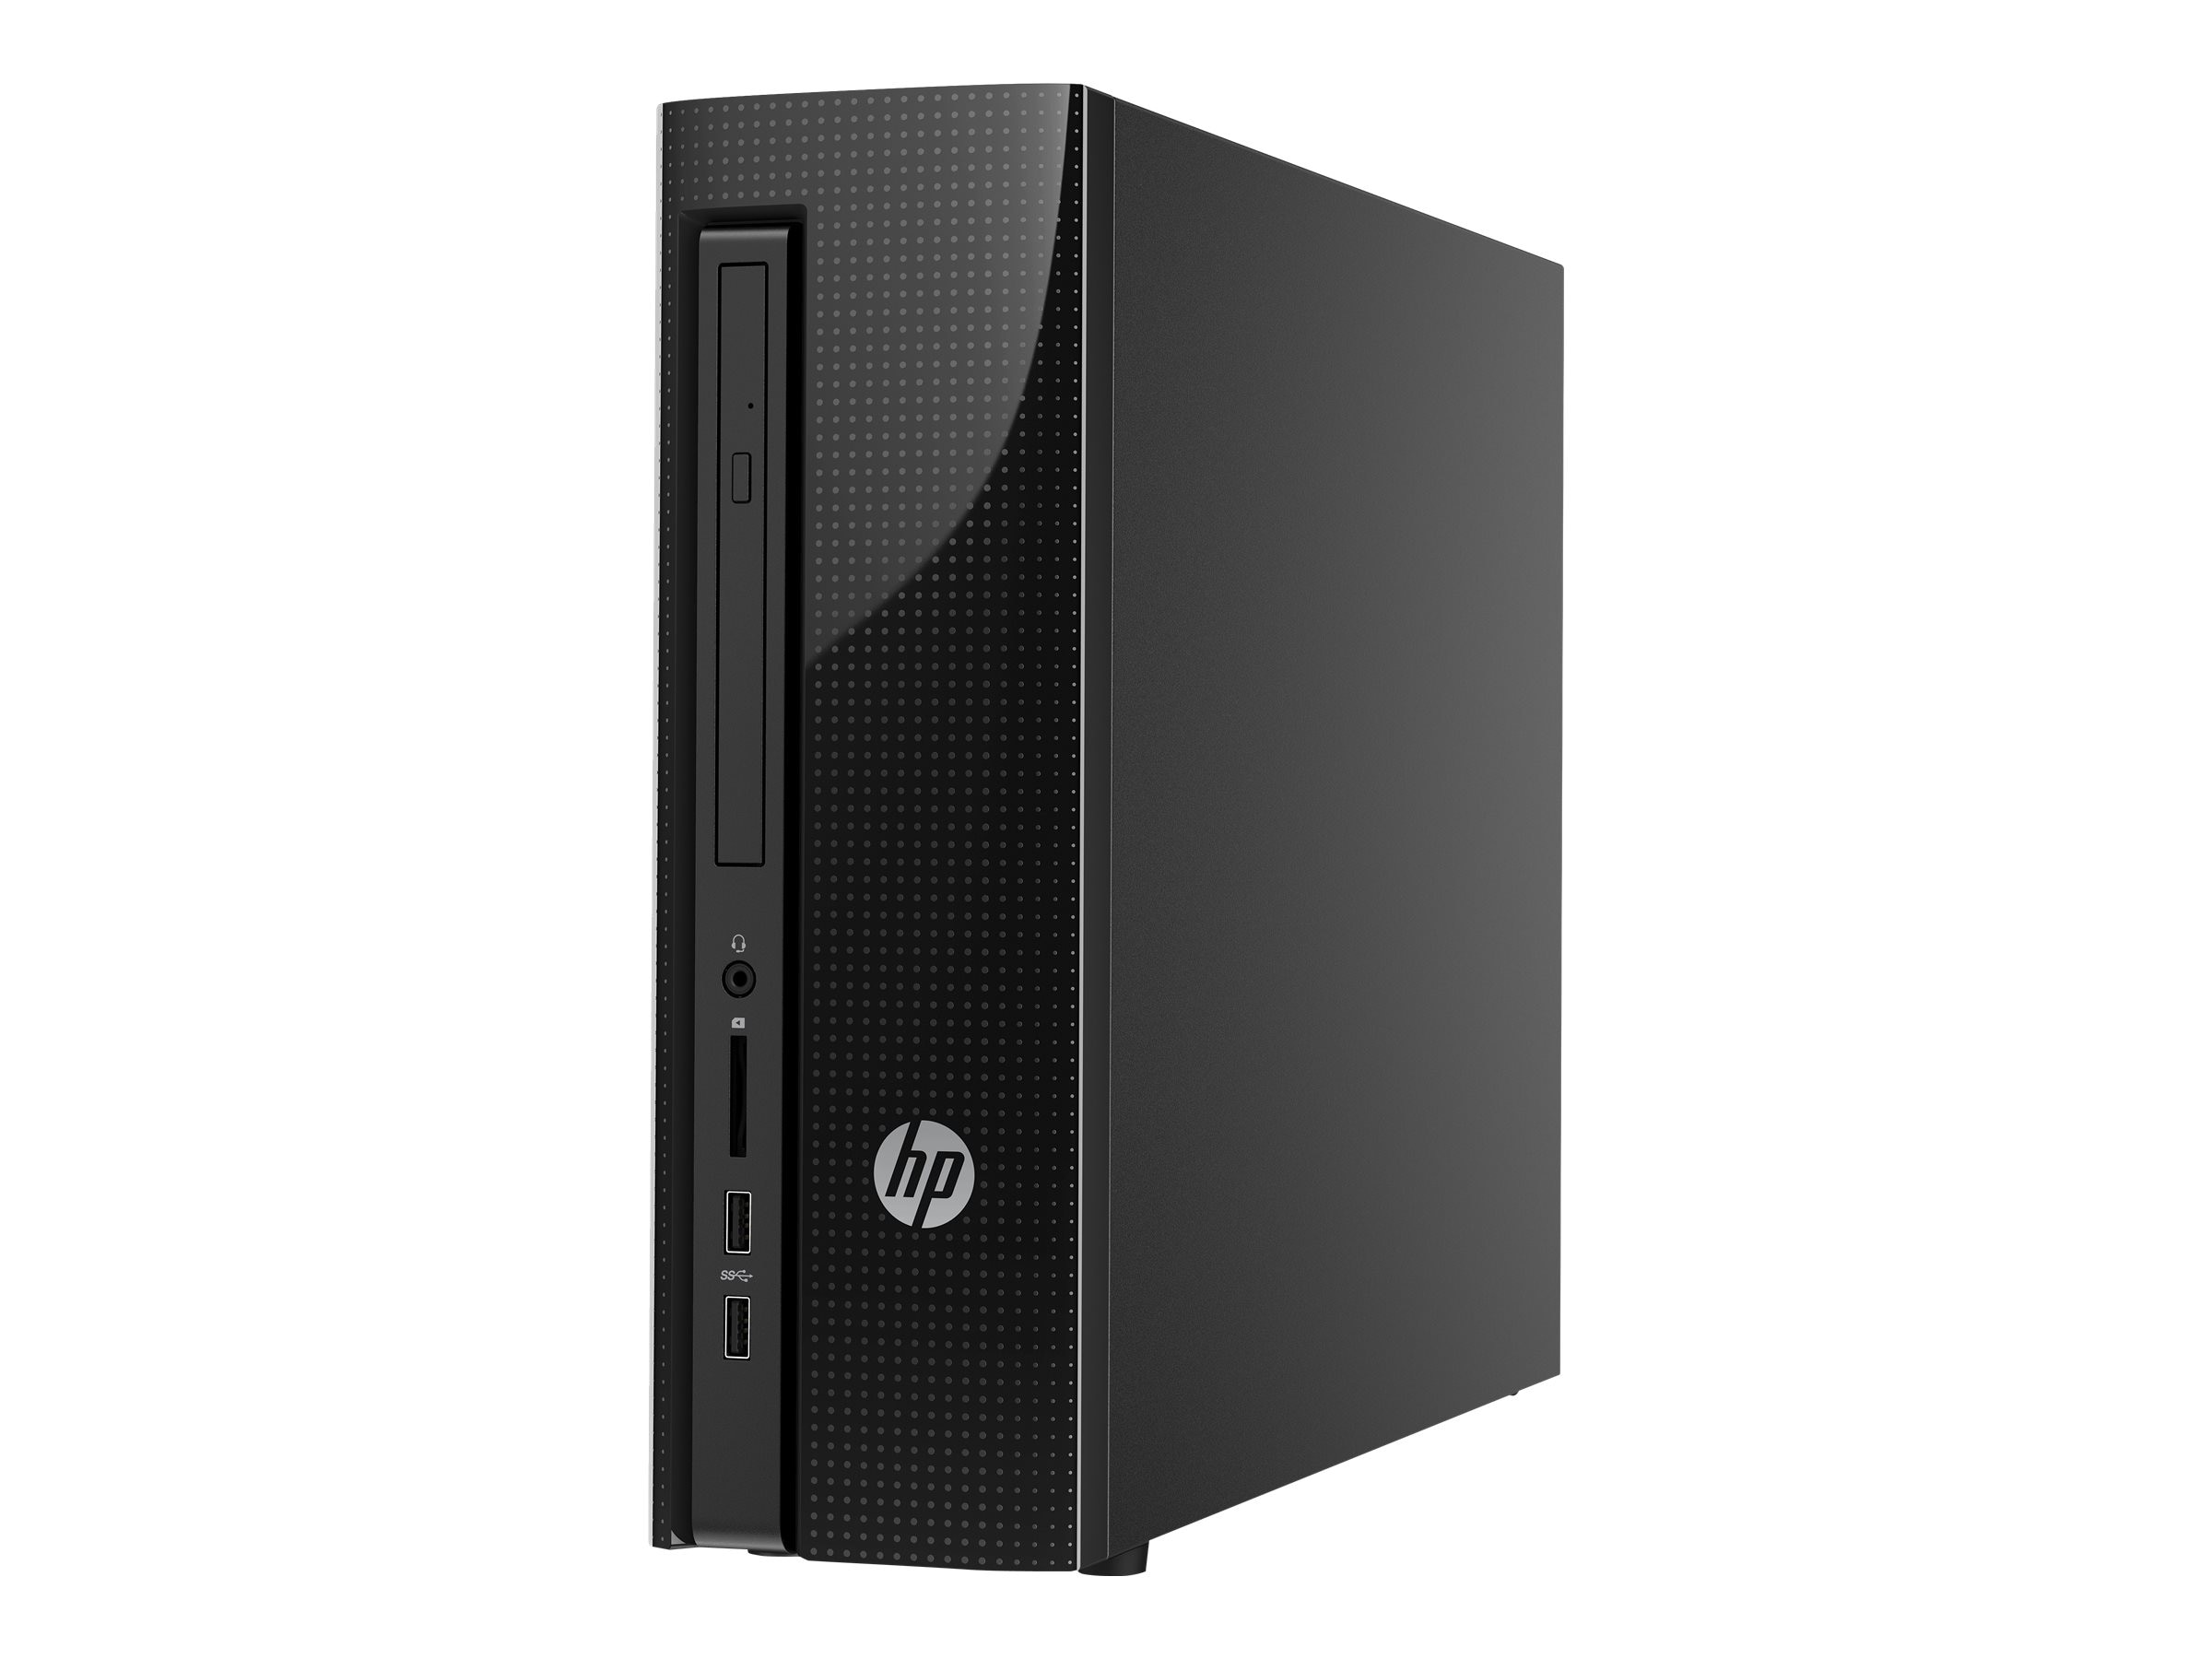 HP Slimline 450-151 Desktop PC, N0B13AA#ABA